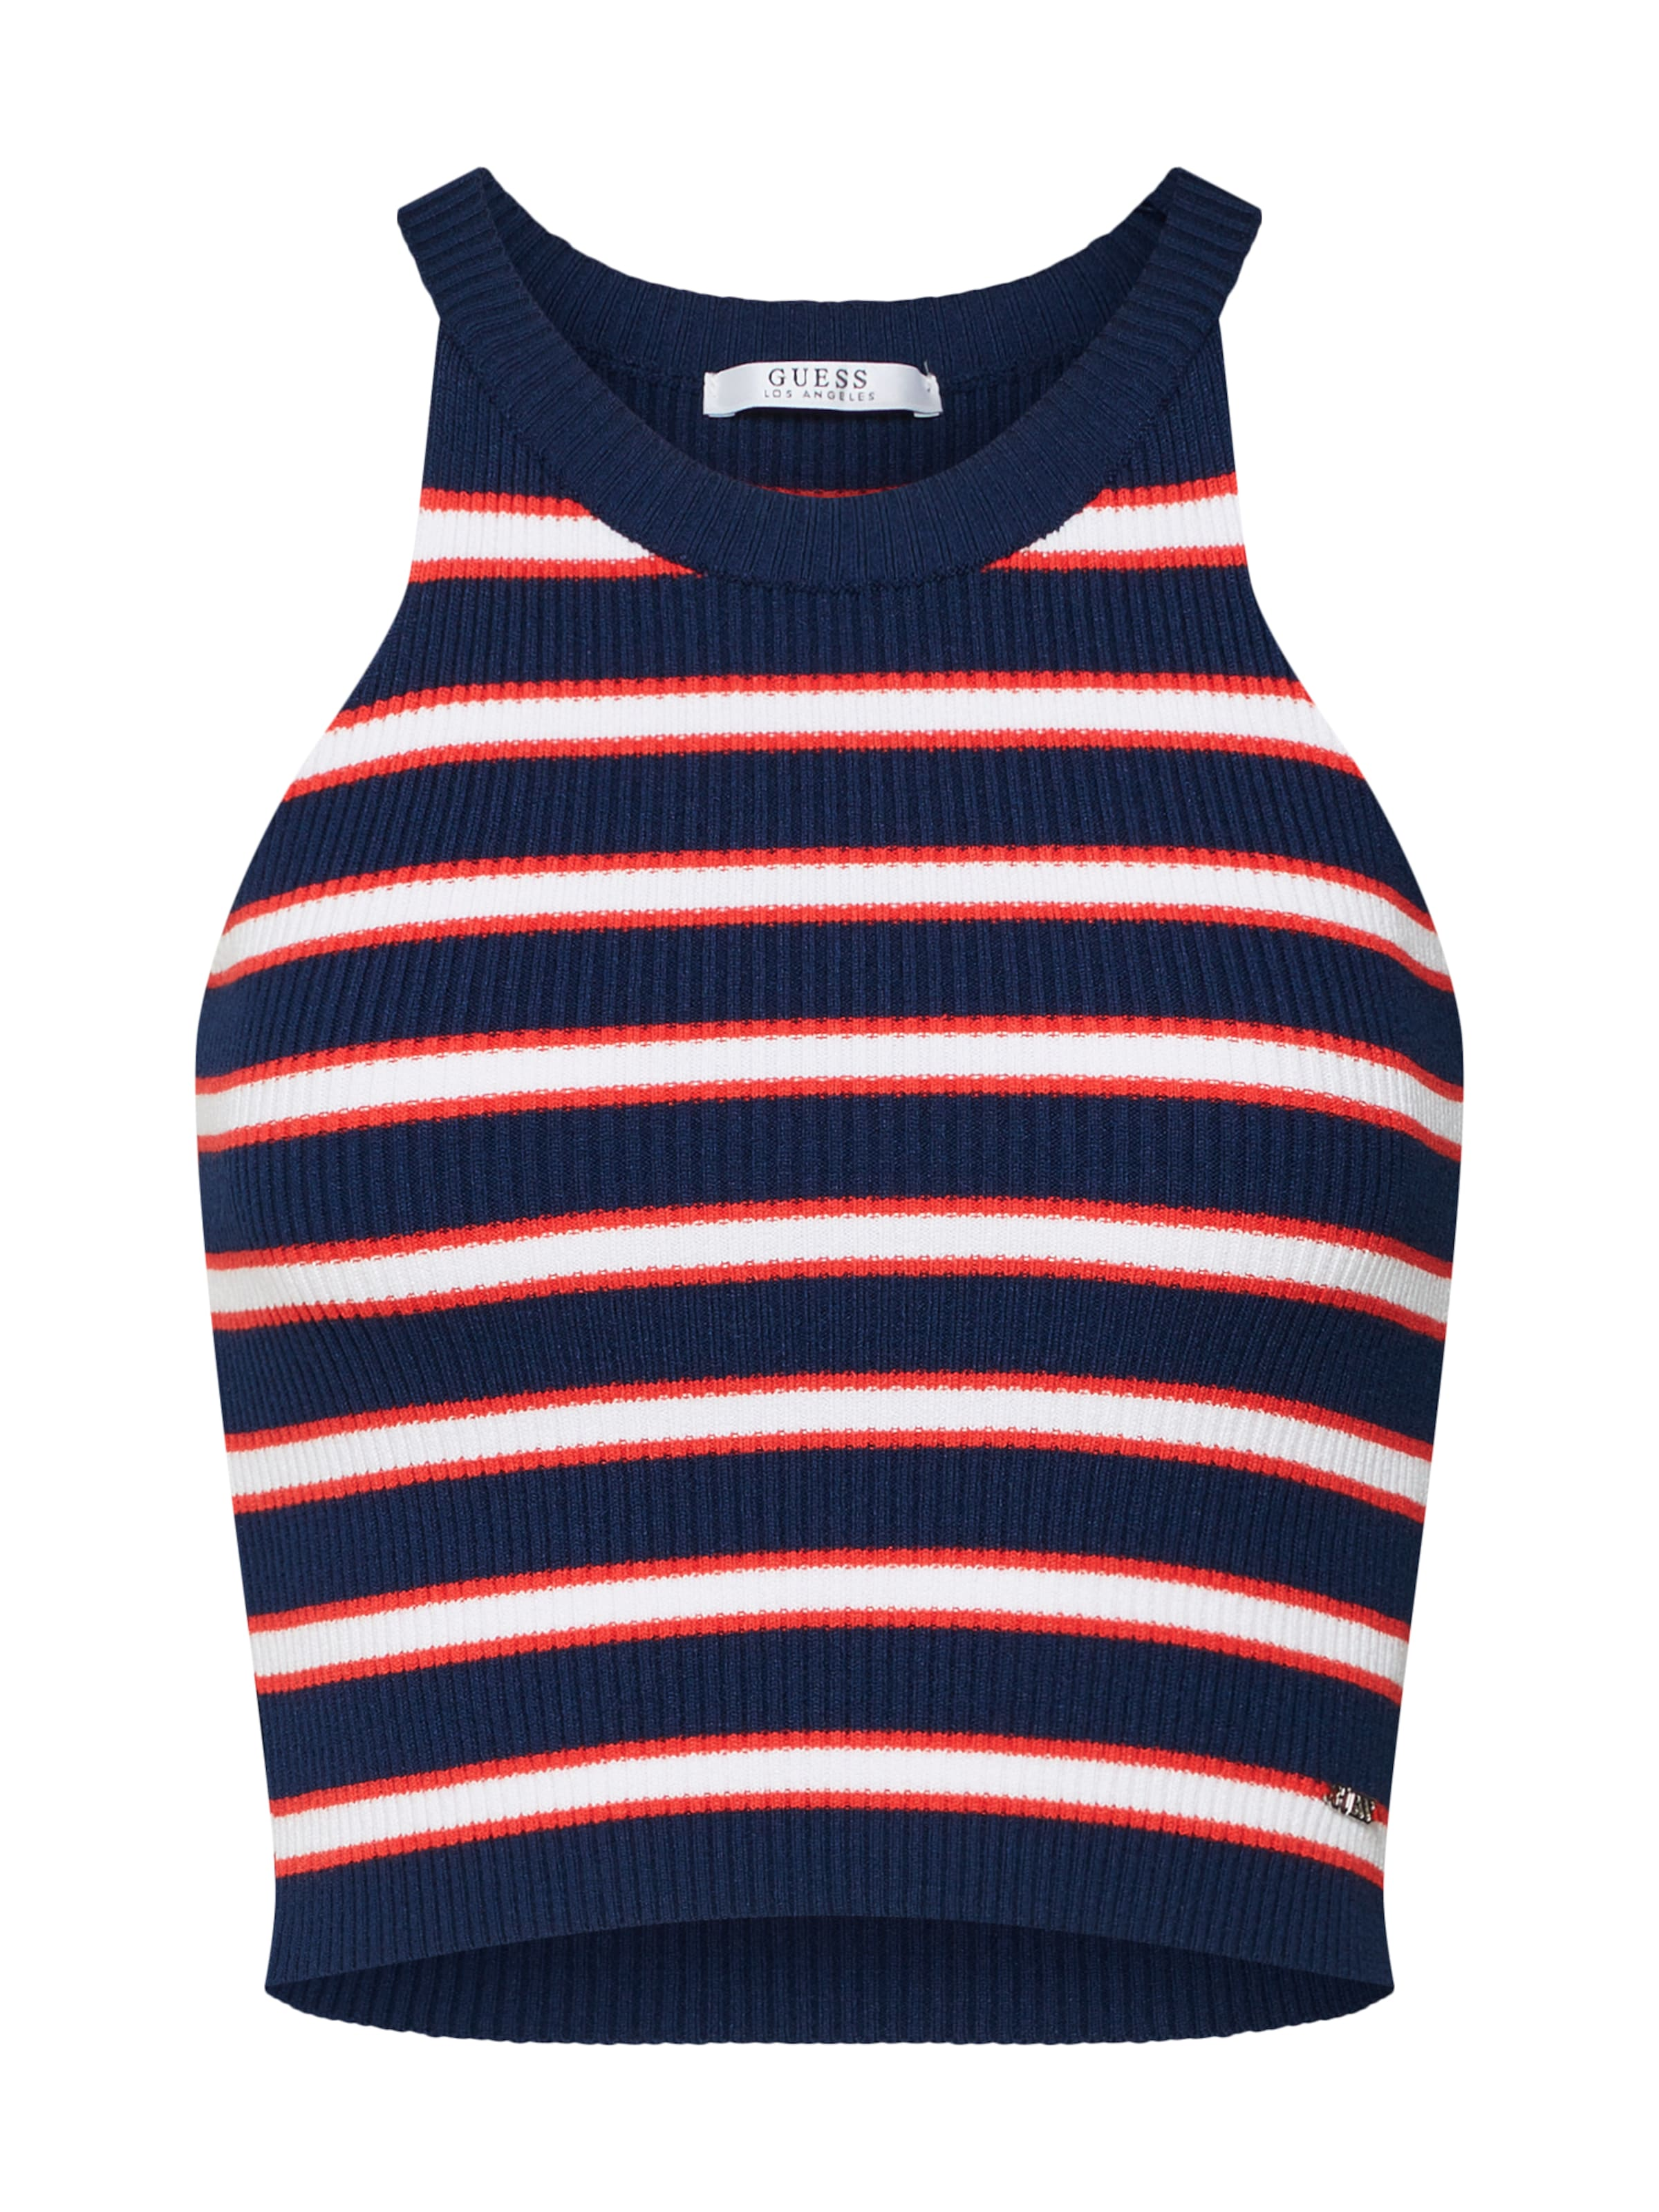 In Top In Guess NavyRot NavyRot Weiß Guess Top Guess Weiß 5A3jqR4L